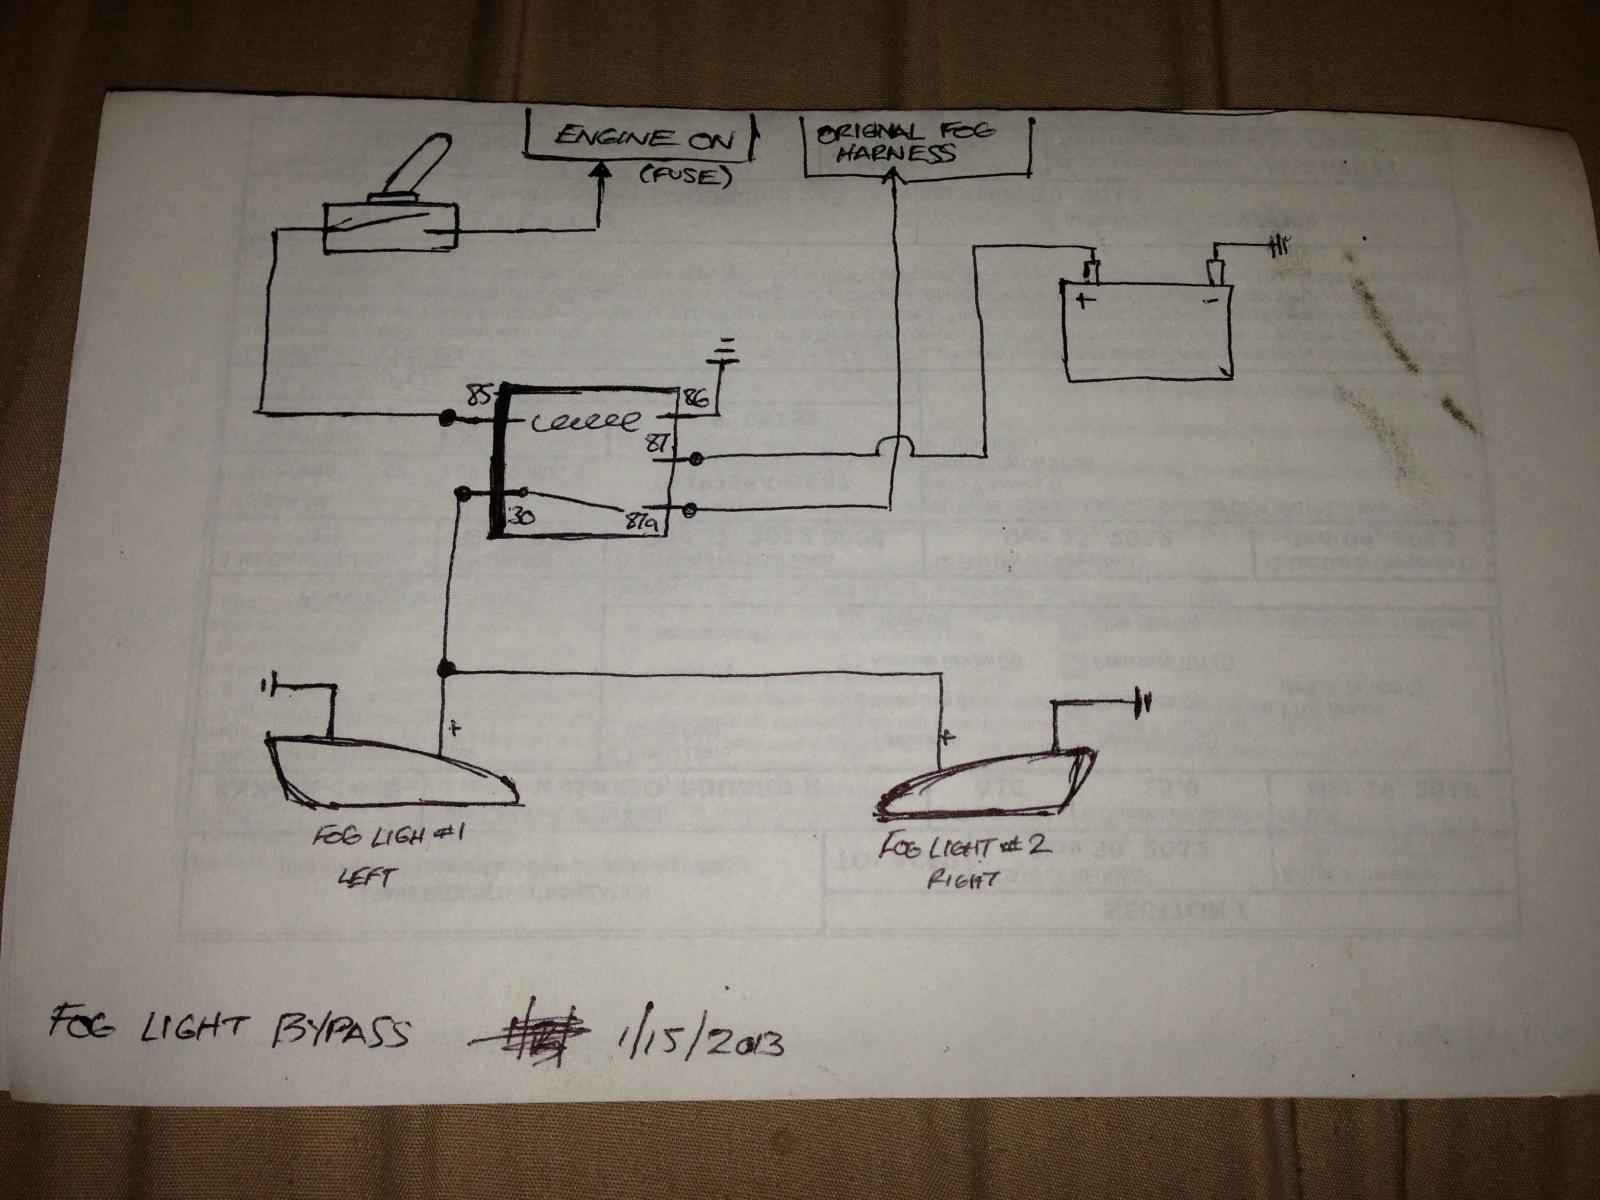 Simple wiring diagram to bypass foglights works wo headlights or w simple wiring diagram to bypass foglights works wo headlights or w highbeams cheapraybanclubmaster